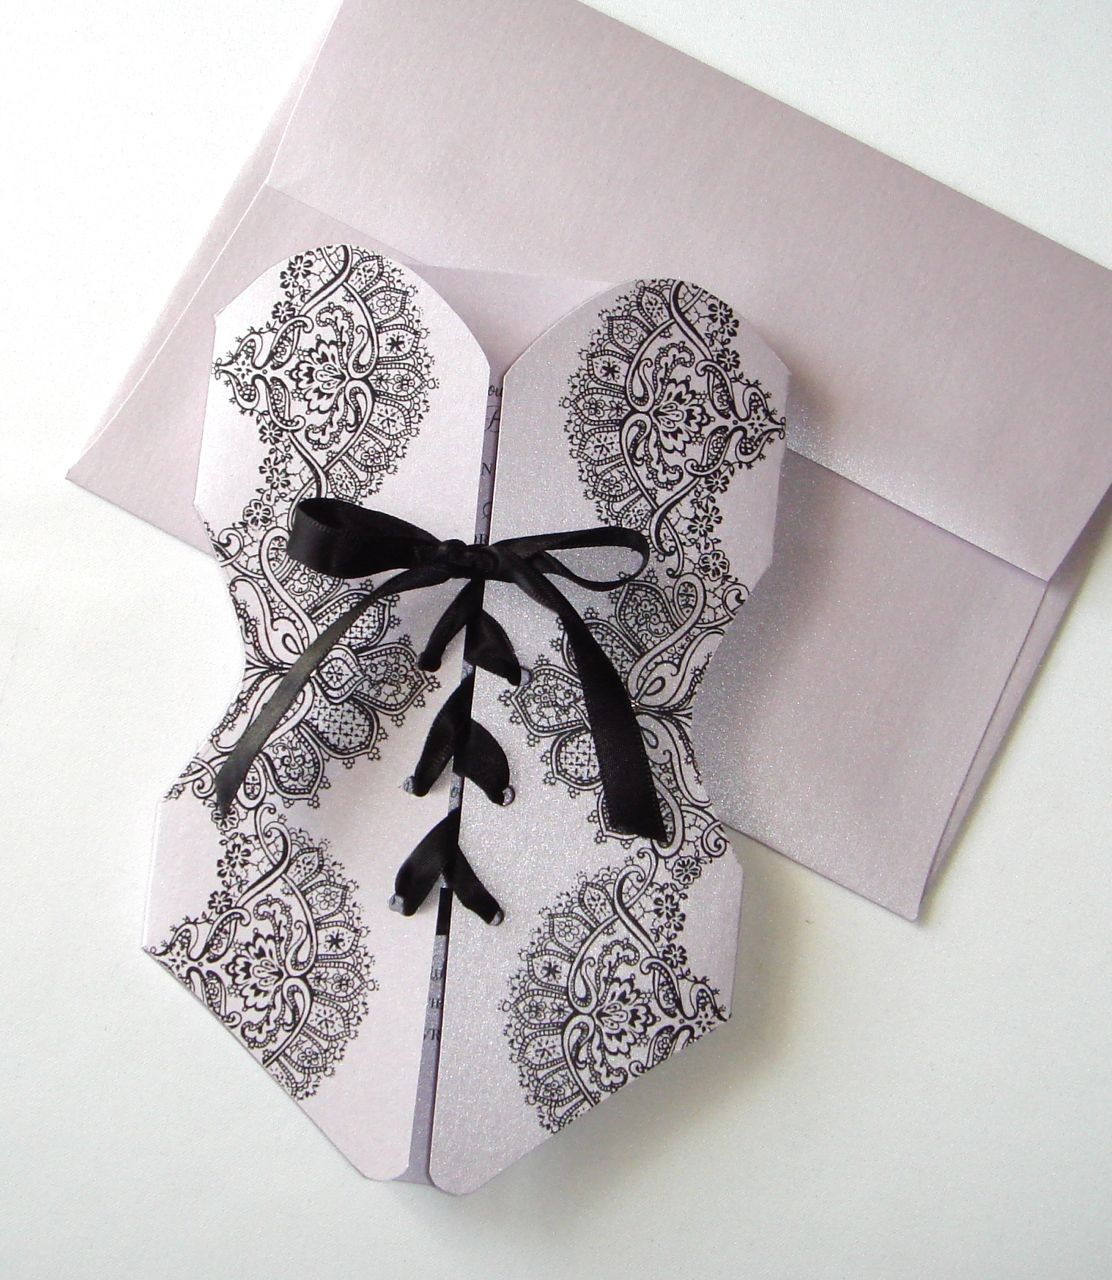 Lingerie Corset Bridal Shower or Bachelorette Party Invitations - totally easy to make yourself